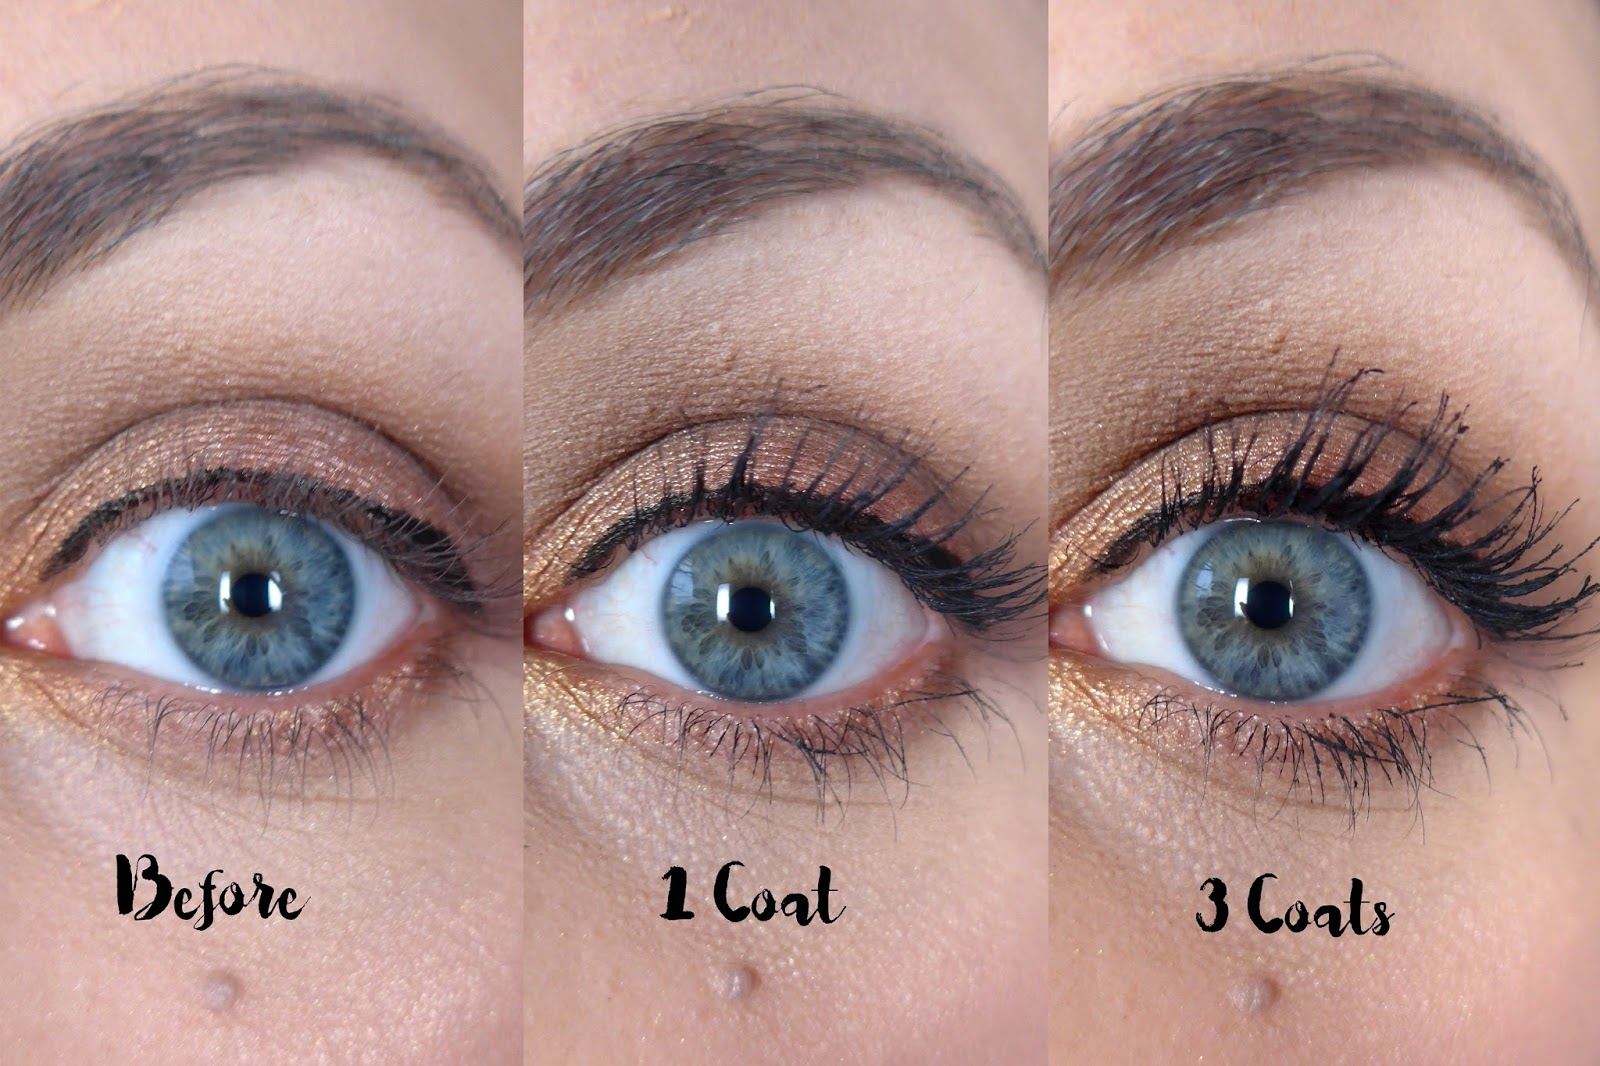 L'Oreal Voluminous Lash Paradise Mascara - Try-on and Review!